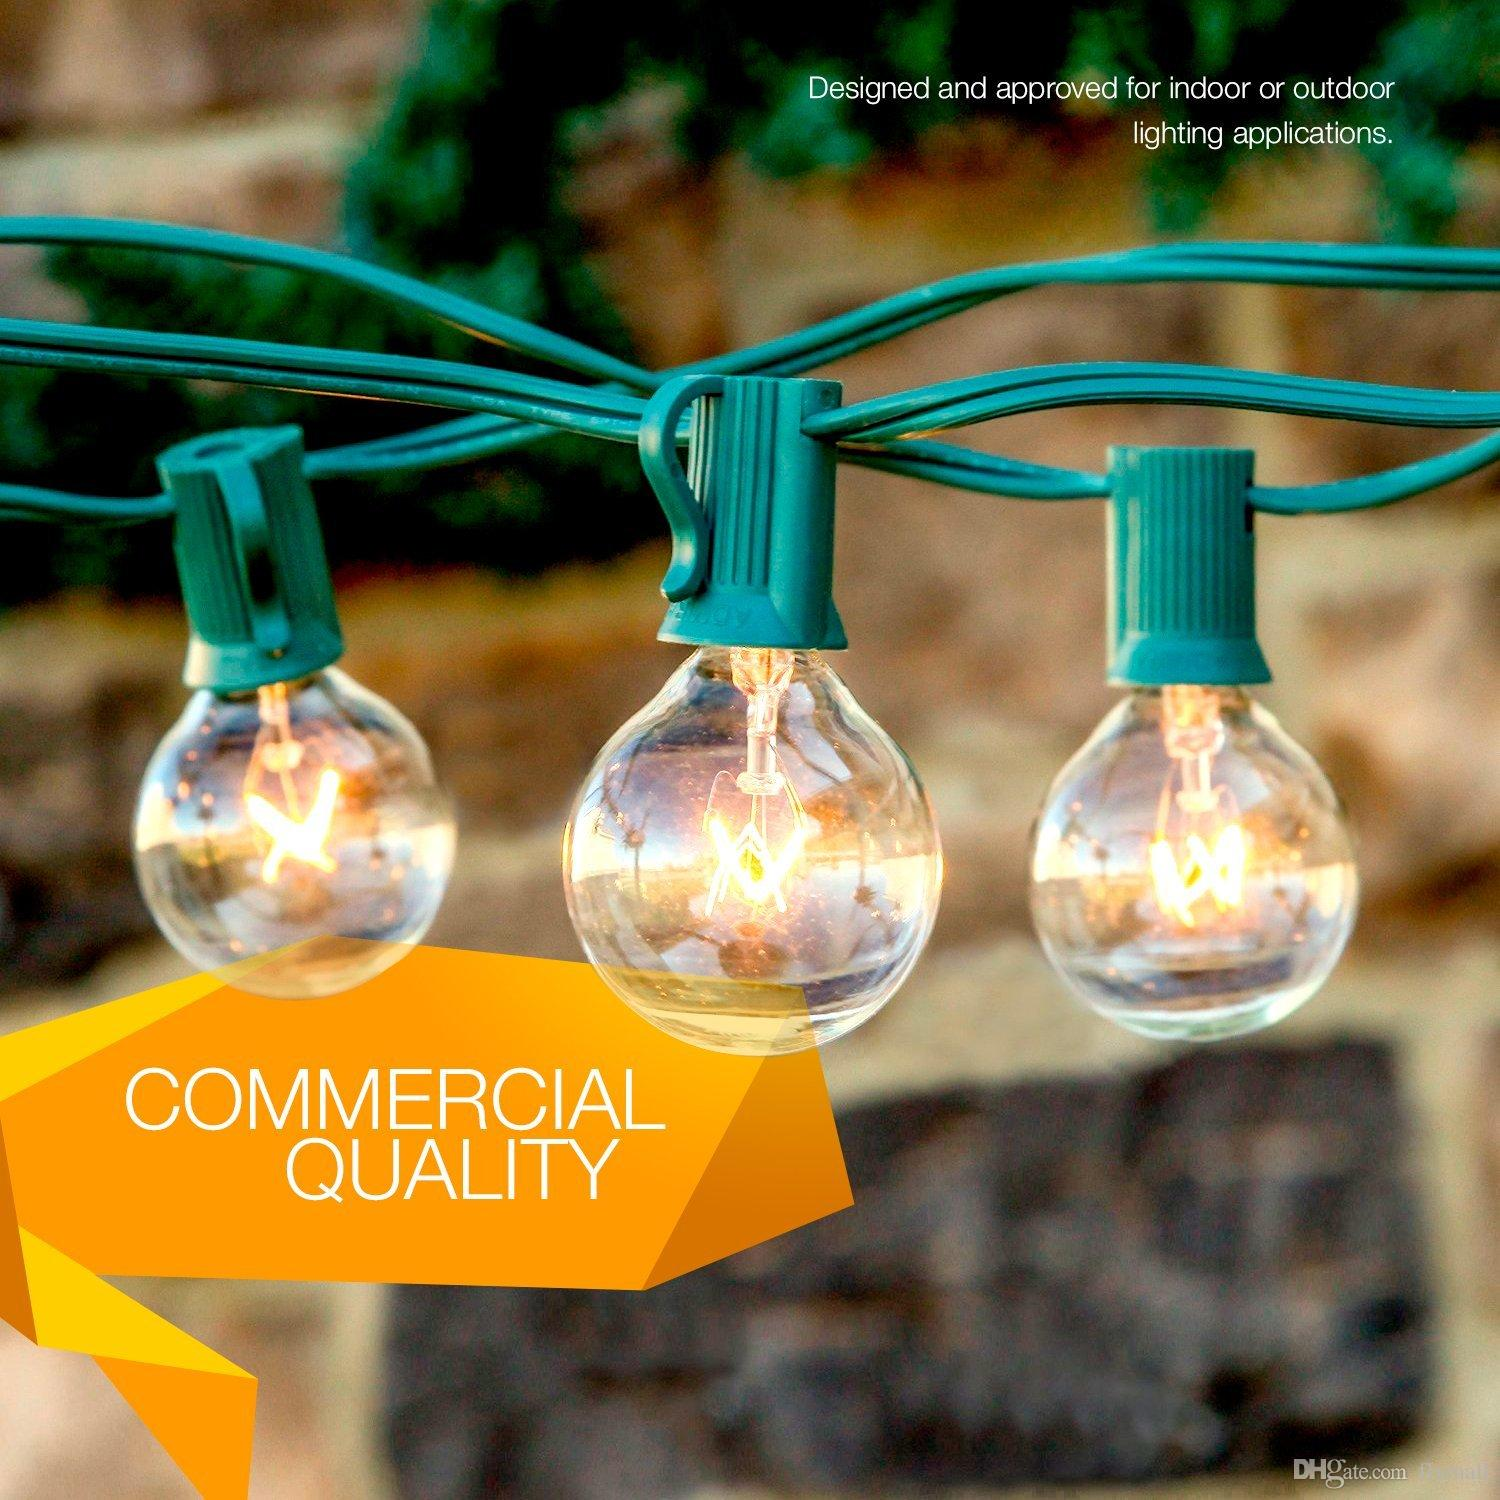 2*25Ft 25 Bulbs String Lights Clear Globe G40 Bulb String Light Set Indoor/Outdoor Christmas Wedding Party Patio String Lights Umbrella Lamp